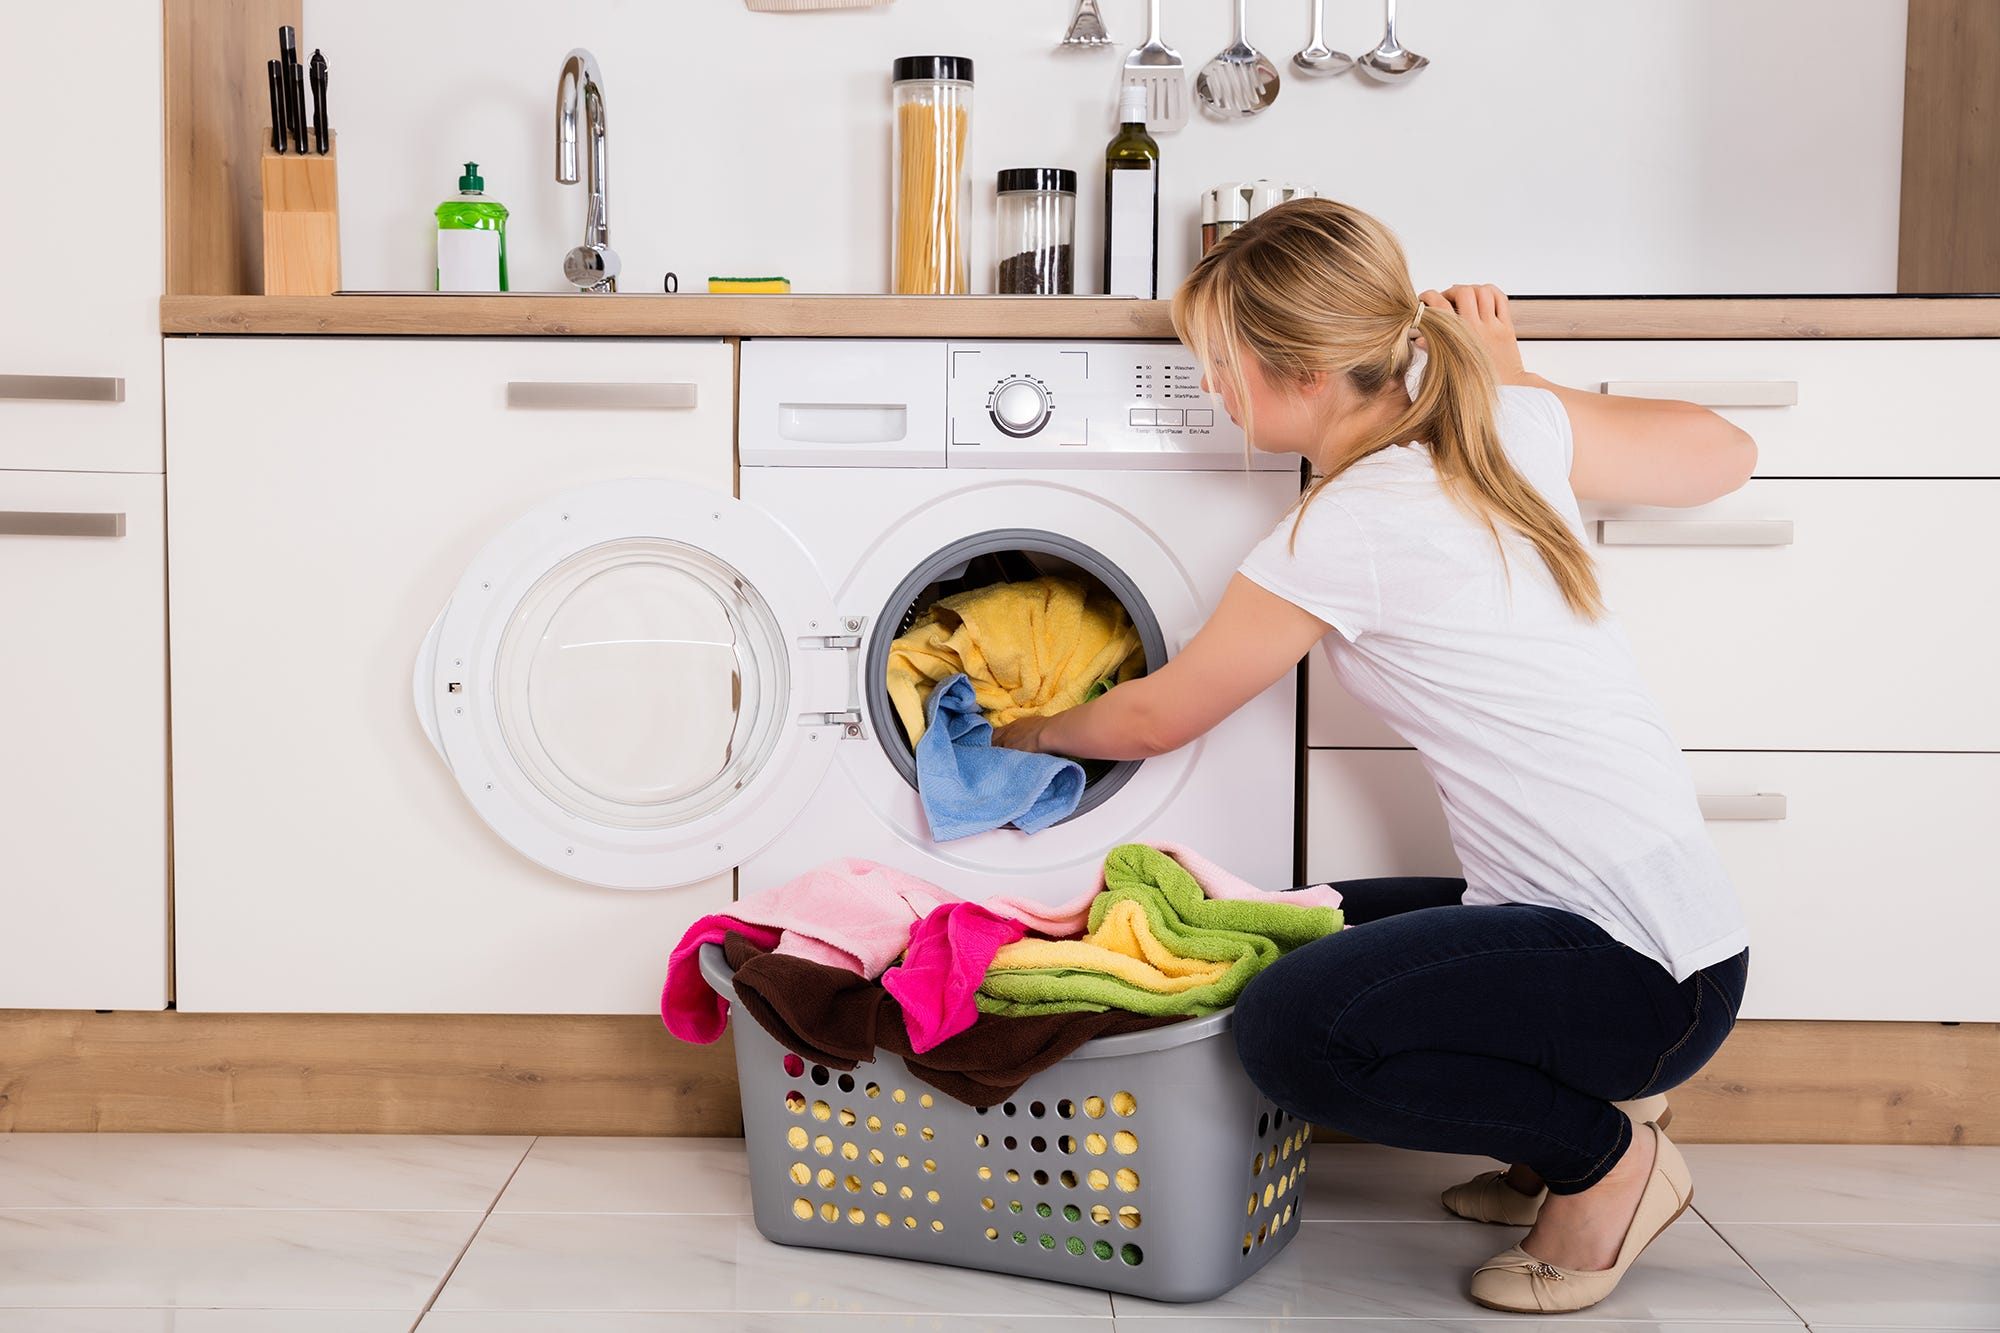 Bacteria could be infesting your washing machine